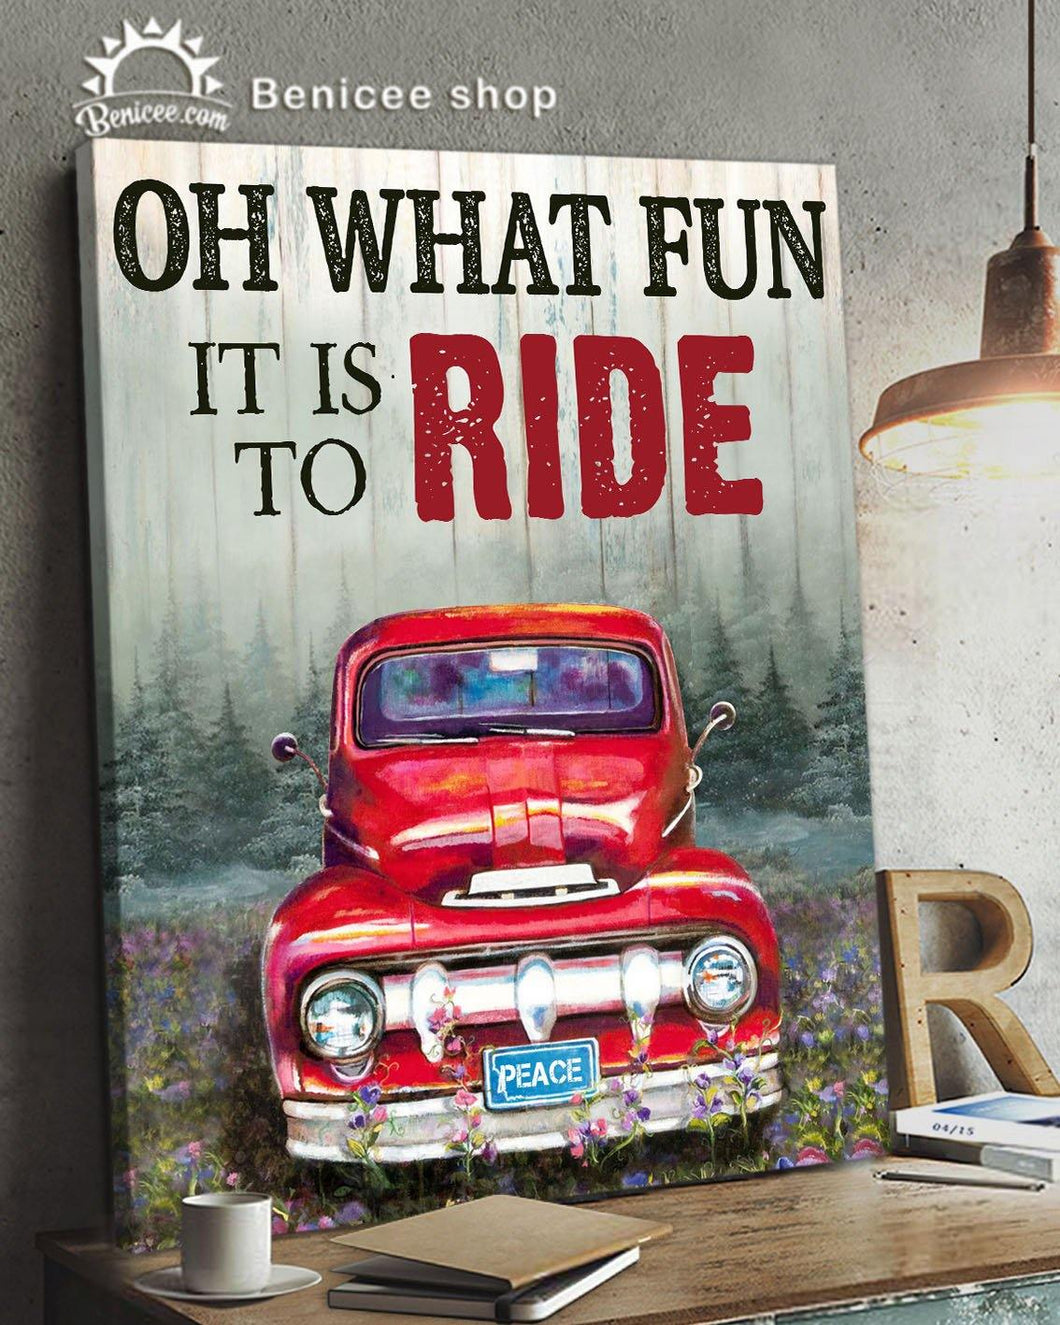 BENICEE Top 3 Farming Chirstmas Wall Art Canvas - Oh what fun It is to ride Red truck-Canvas Print-Benicee